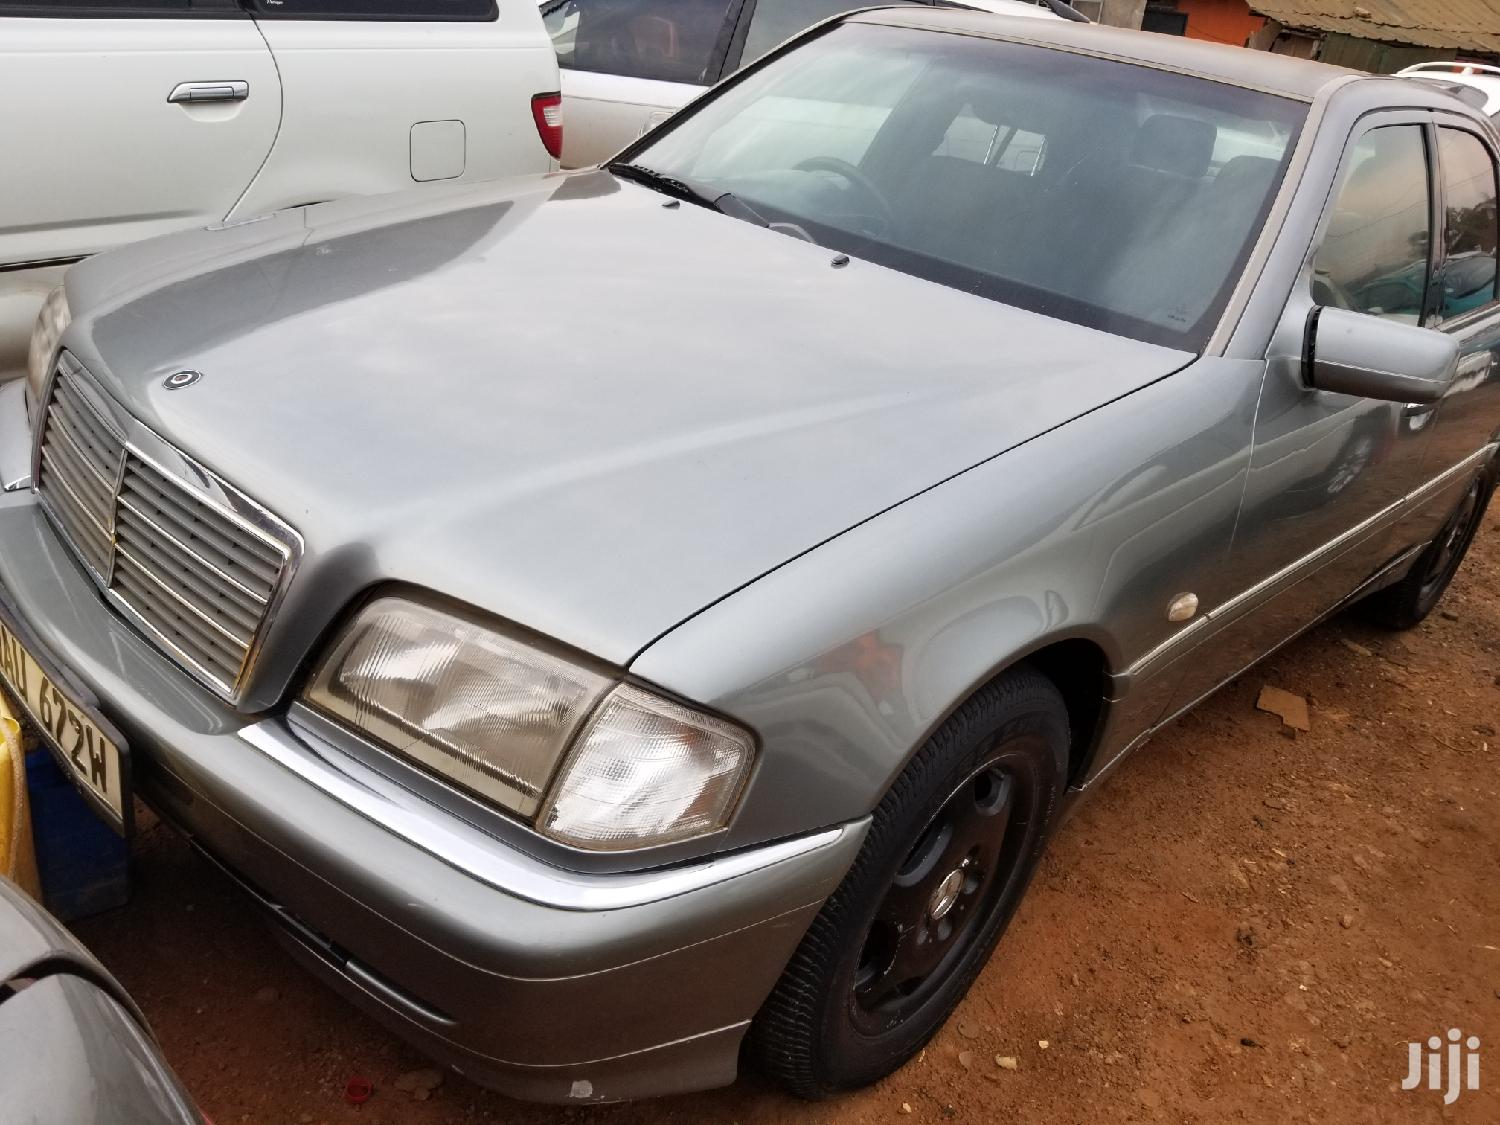 Mercedes-Benz C200 2001 Gray | Cars for sale in Kampala, Central Region, Uganda